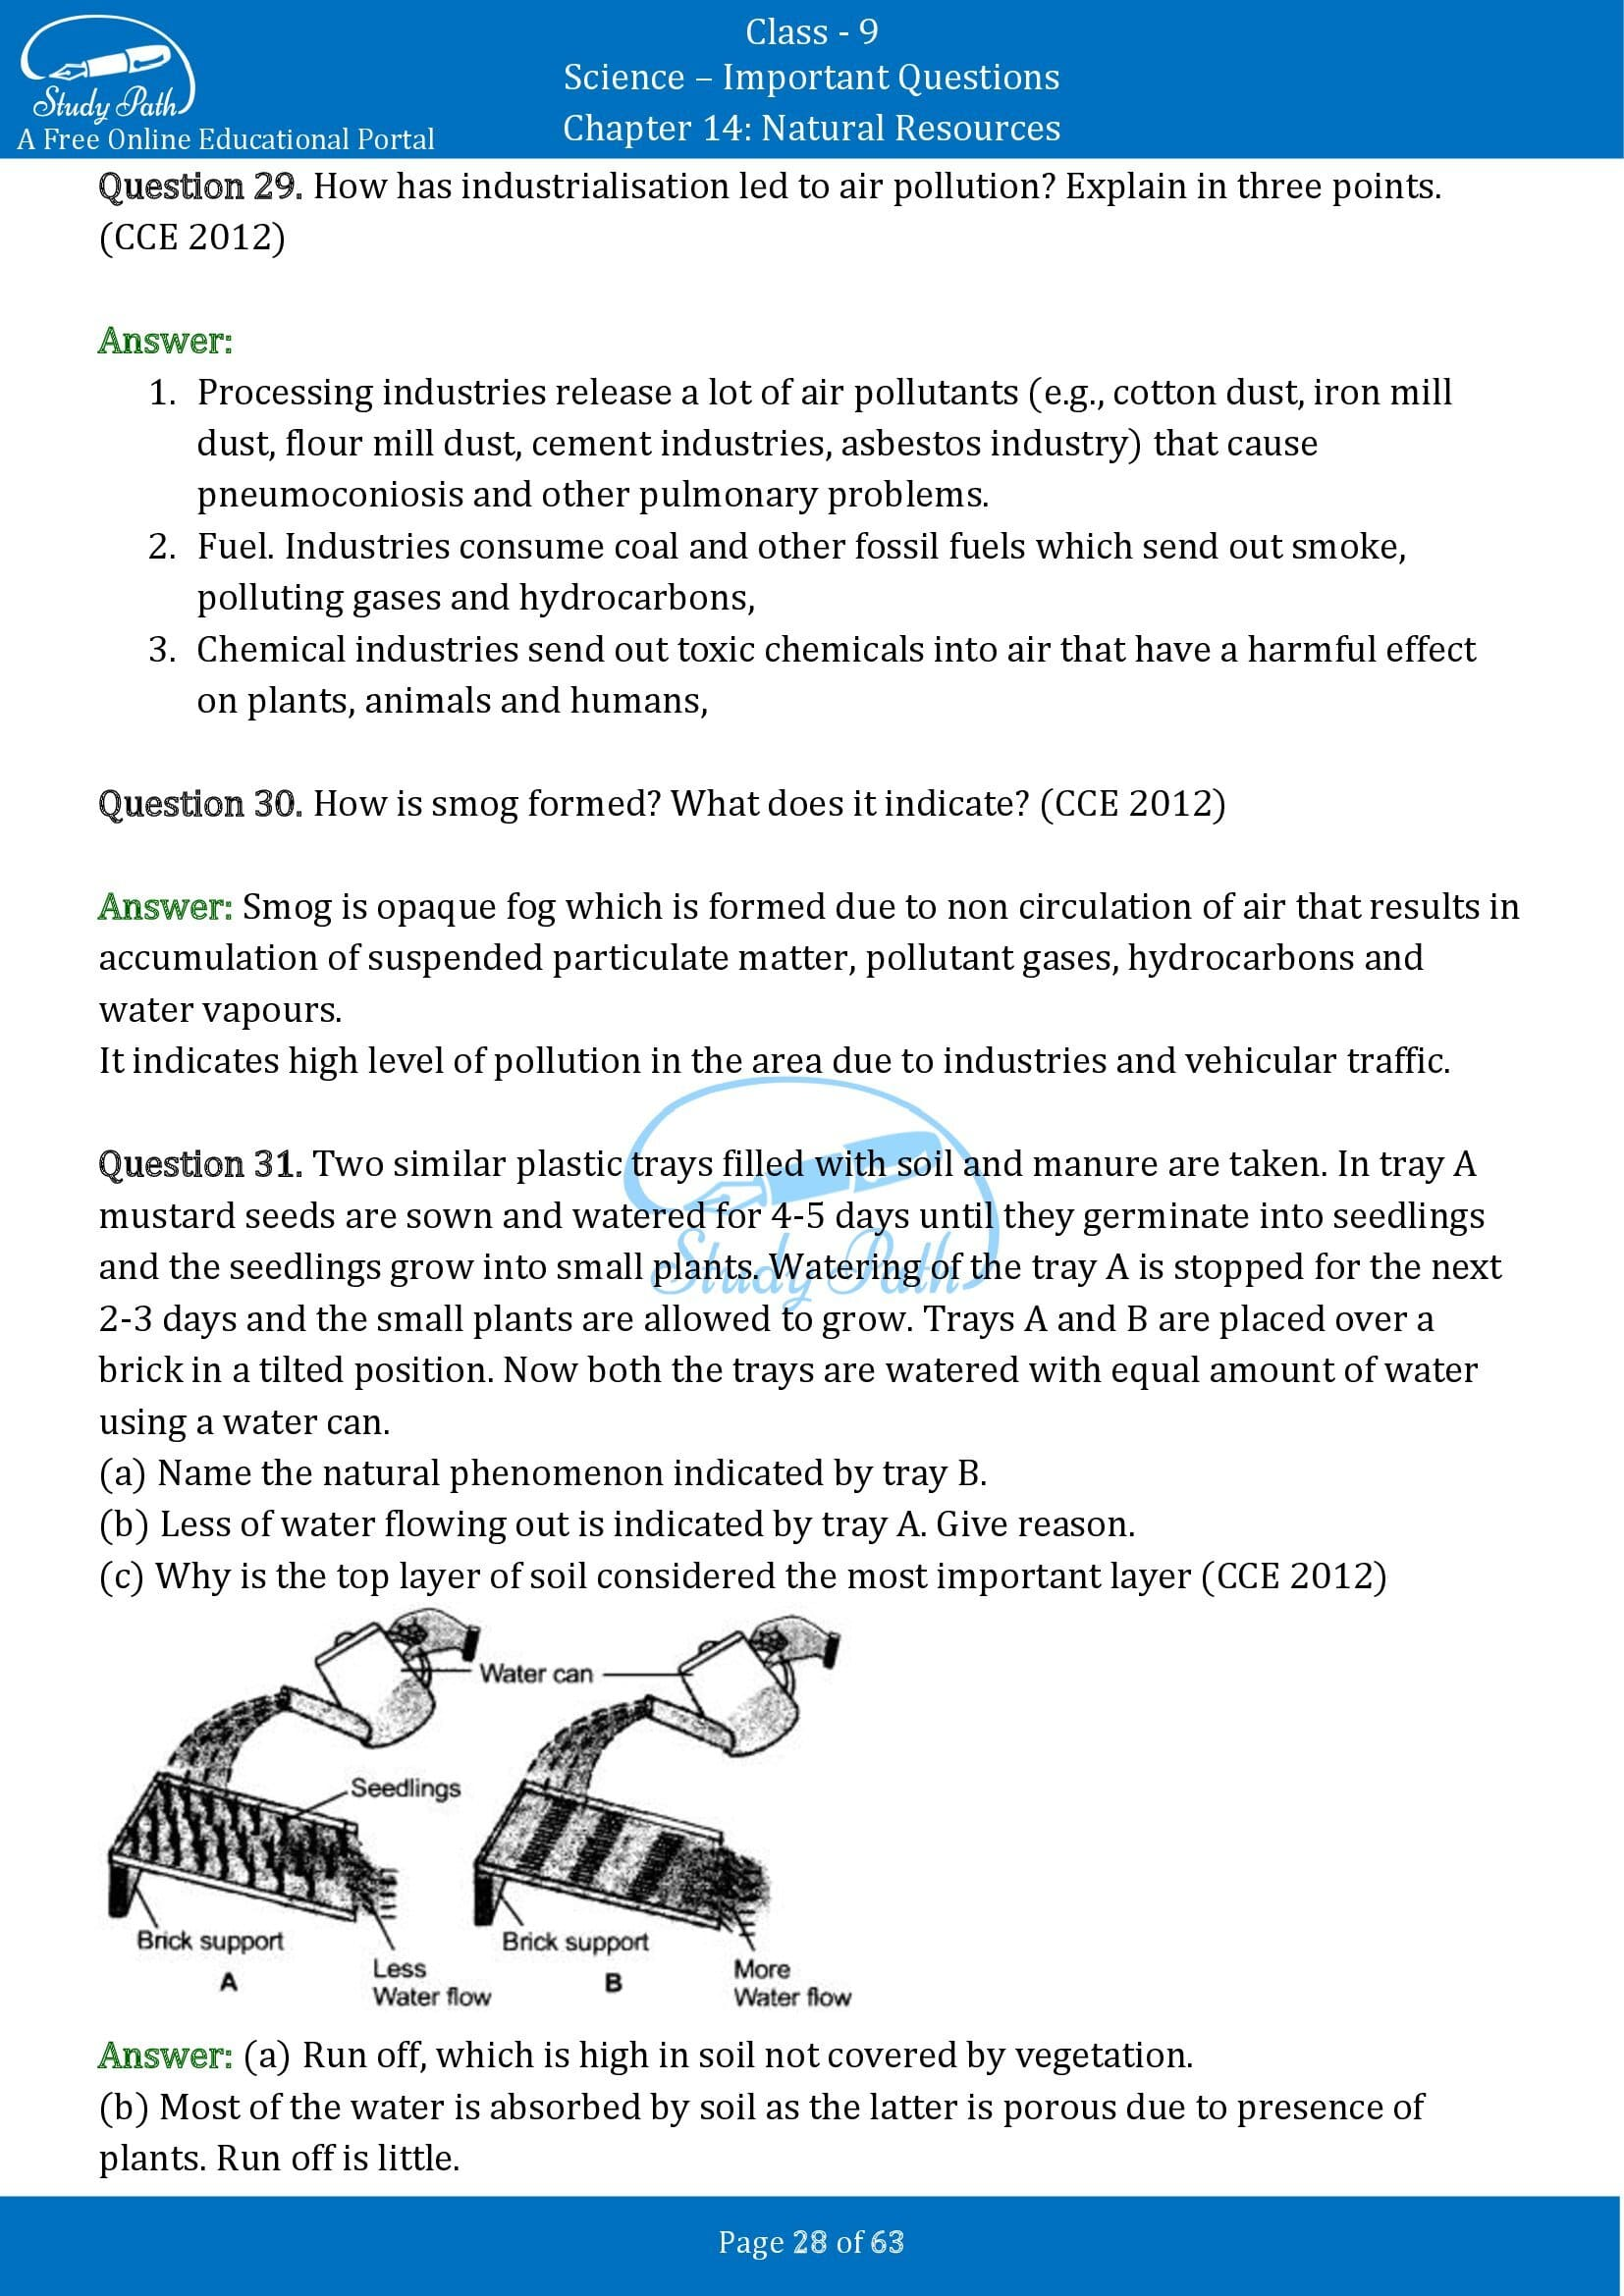 Important Questions for Class 9 Science Chapter 14 Natural Resources 00028